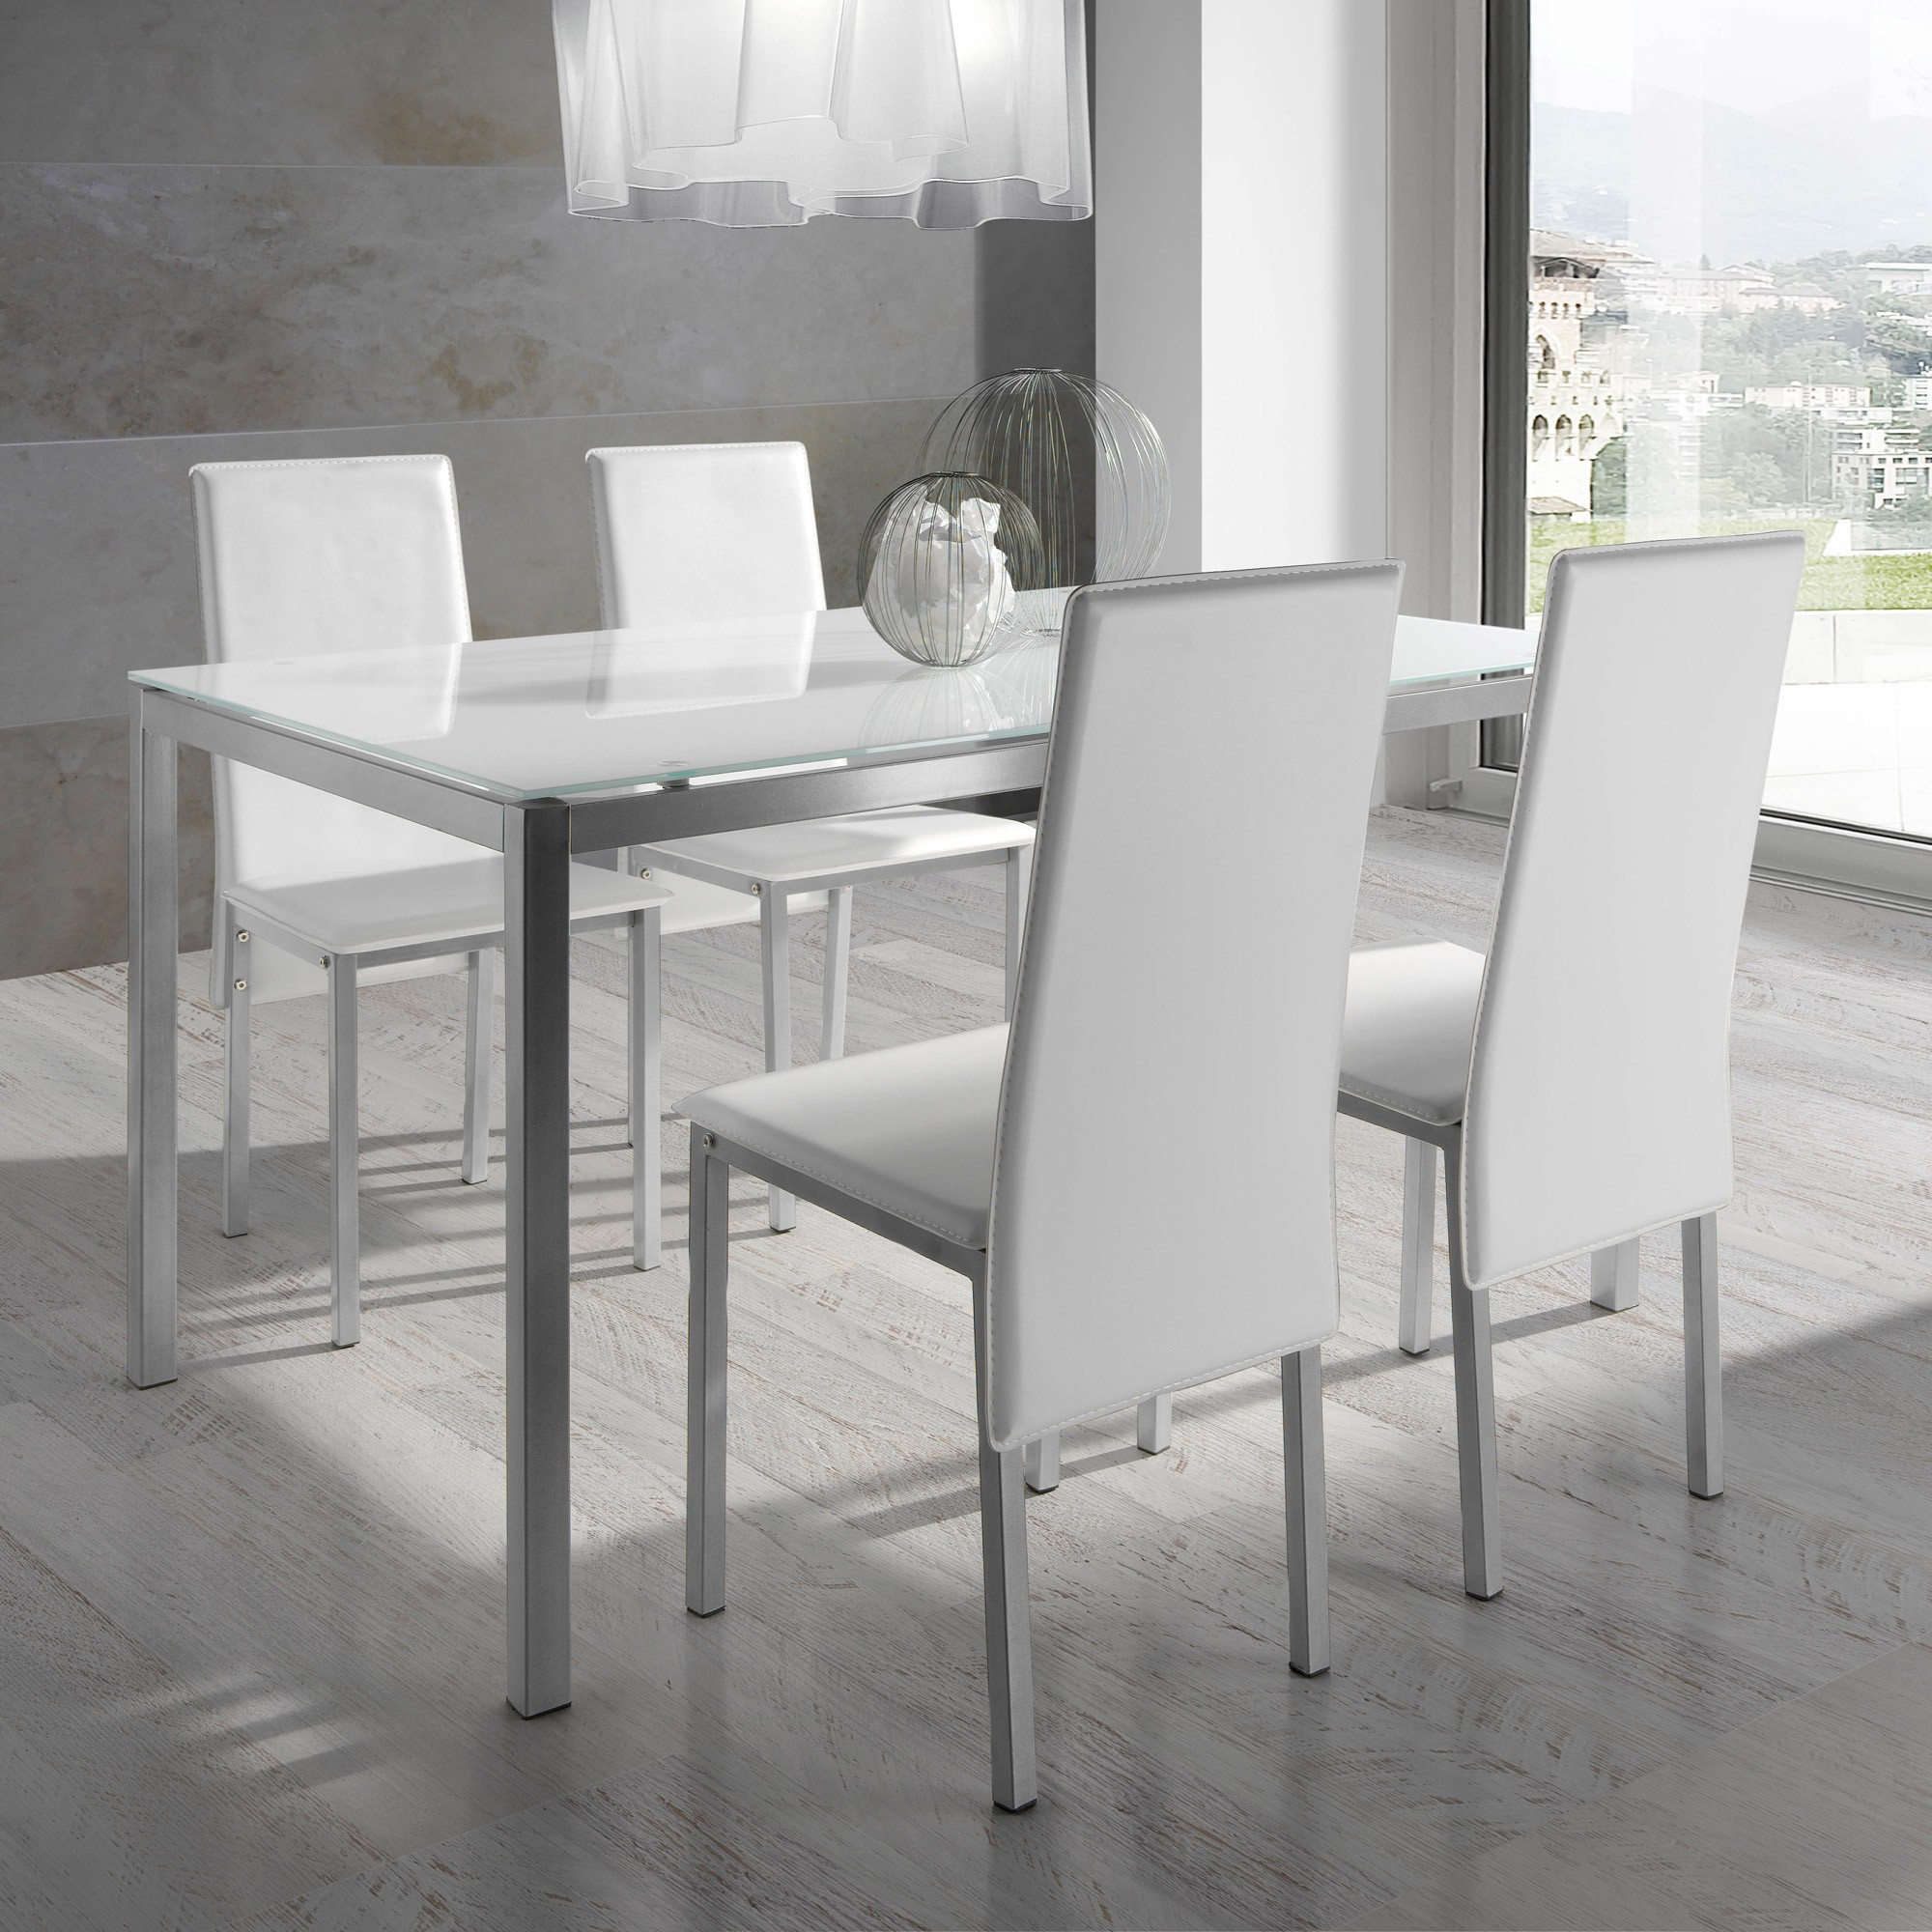 Ensemble table et chaise salle a manger but chaise for Ensemble table et chaise design